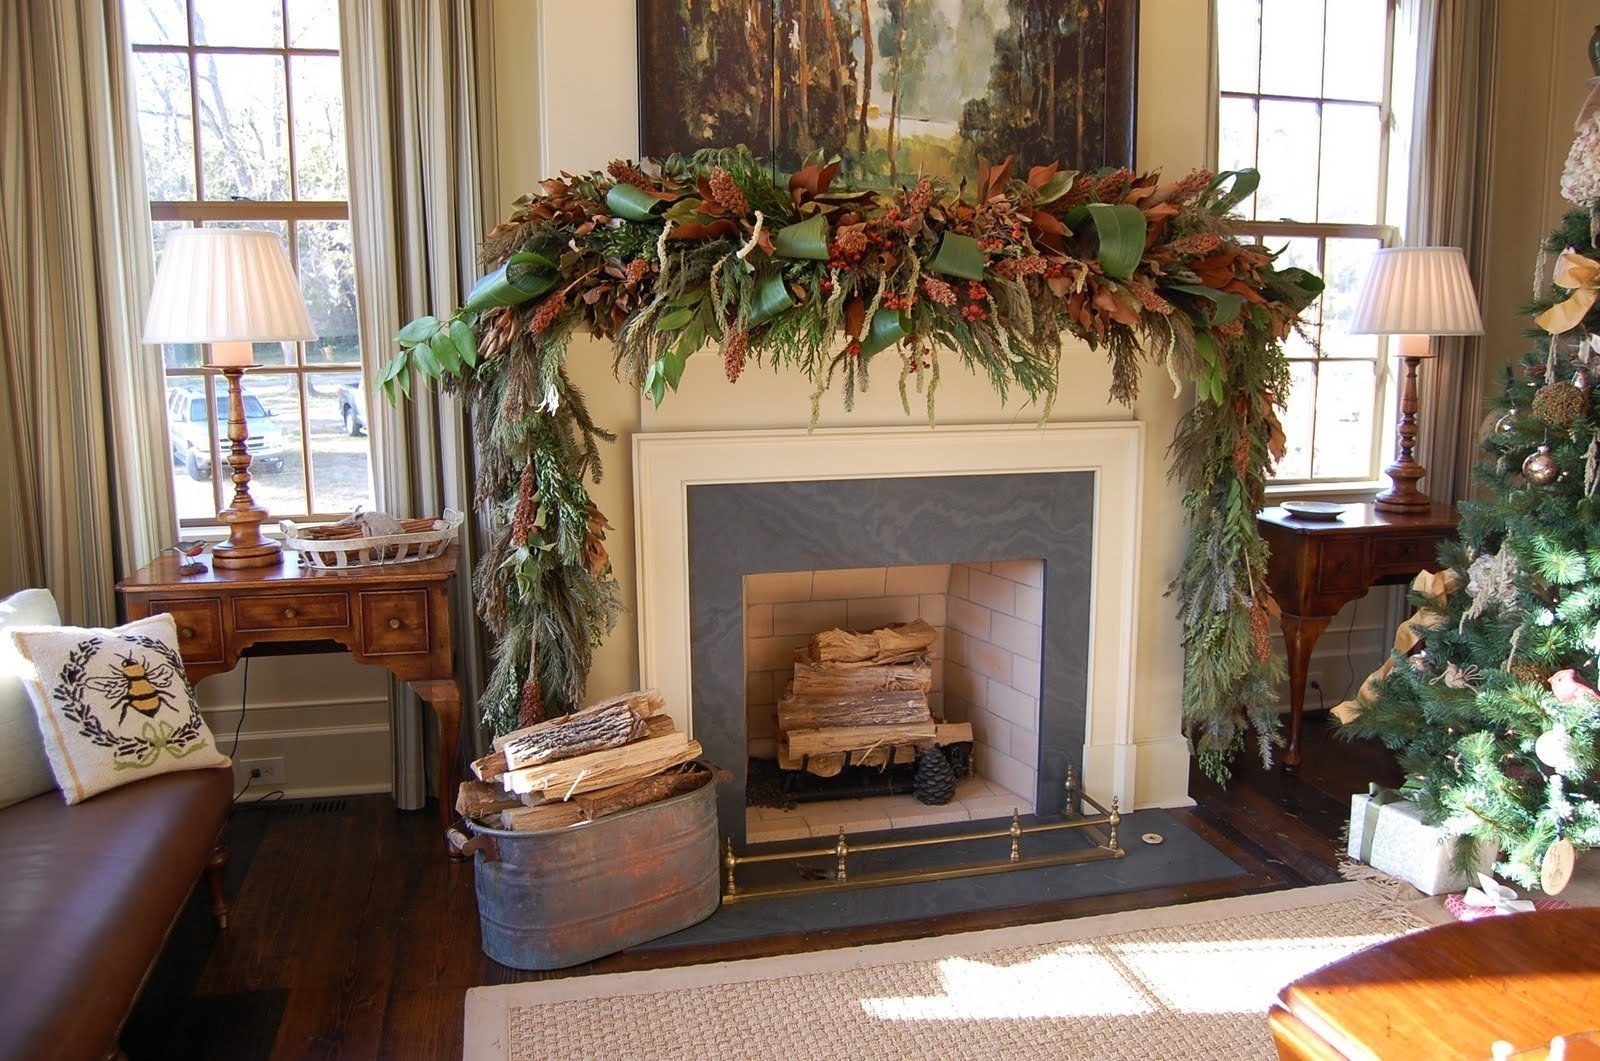 10 Wonderful Christmas Decorating Ideas For Mantels 16 unique fireplace mantel holiday decorating ideas dma homes 27173 2020